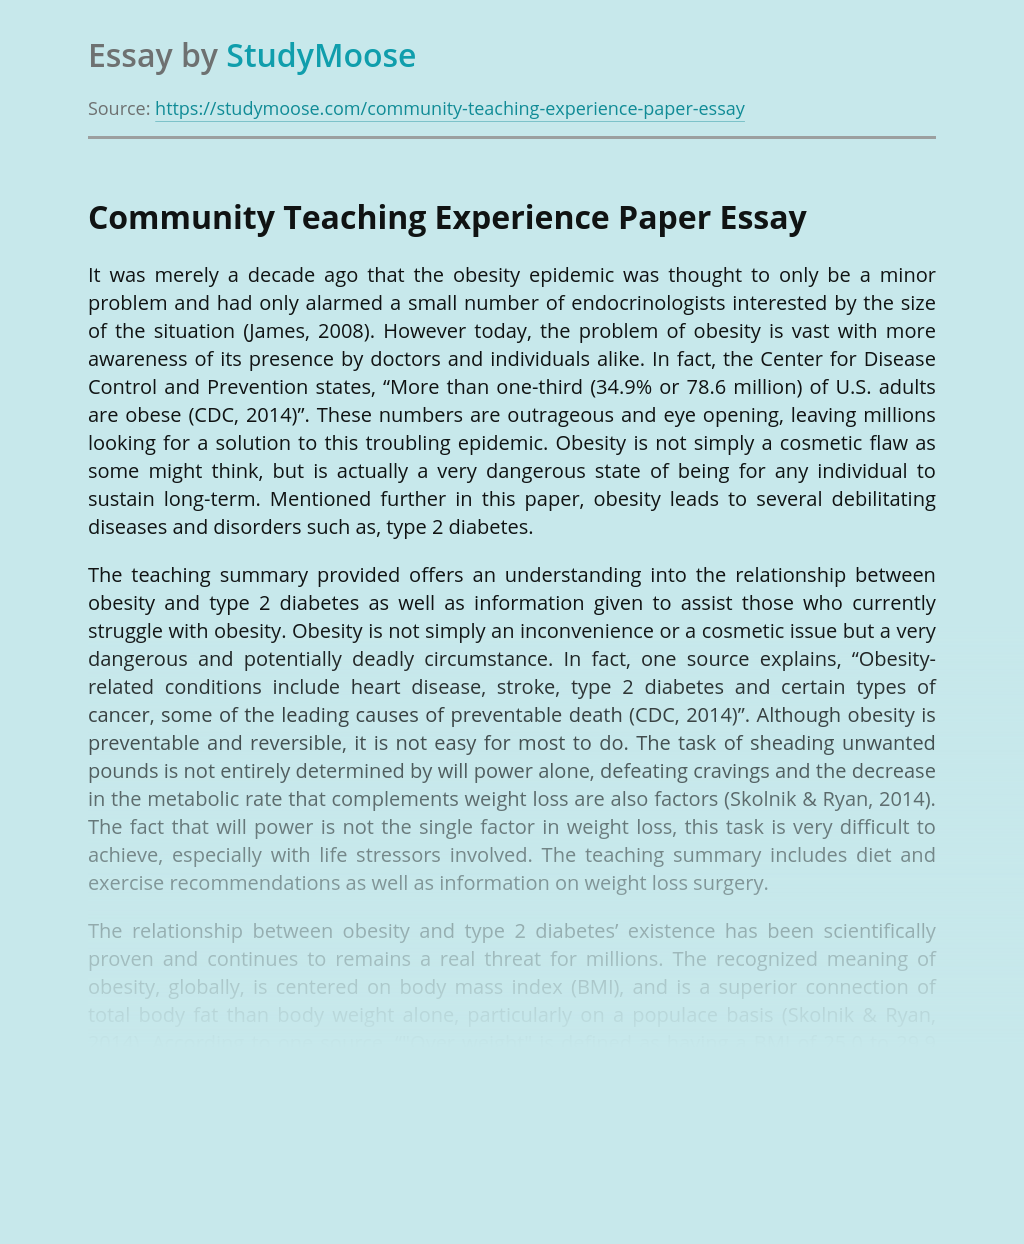 Community Teaching Experience Paper